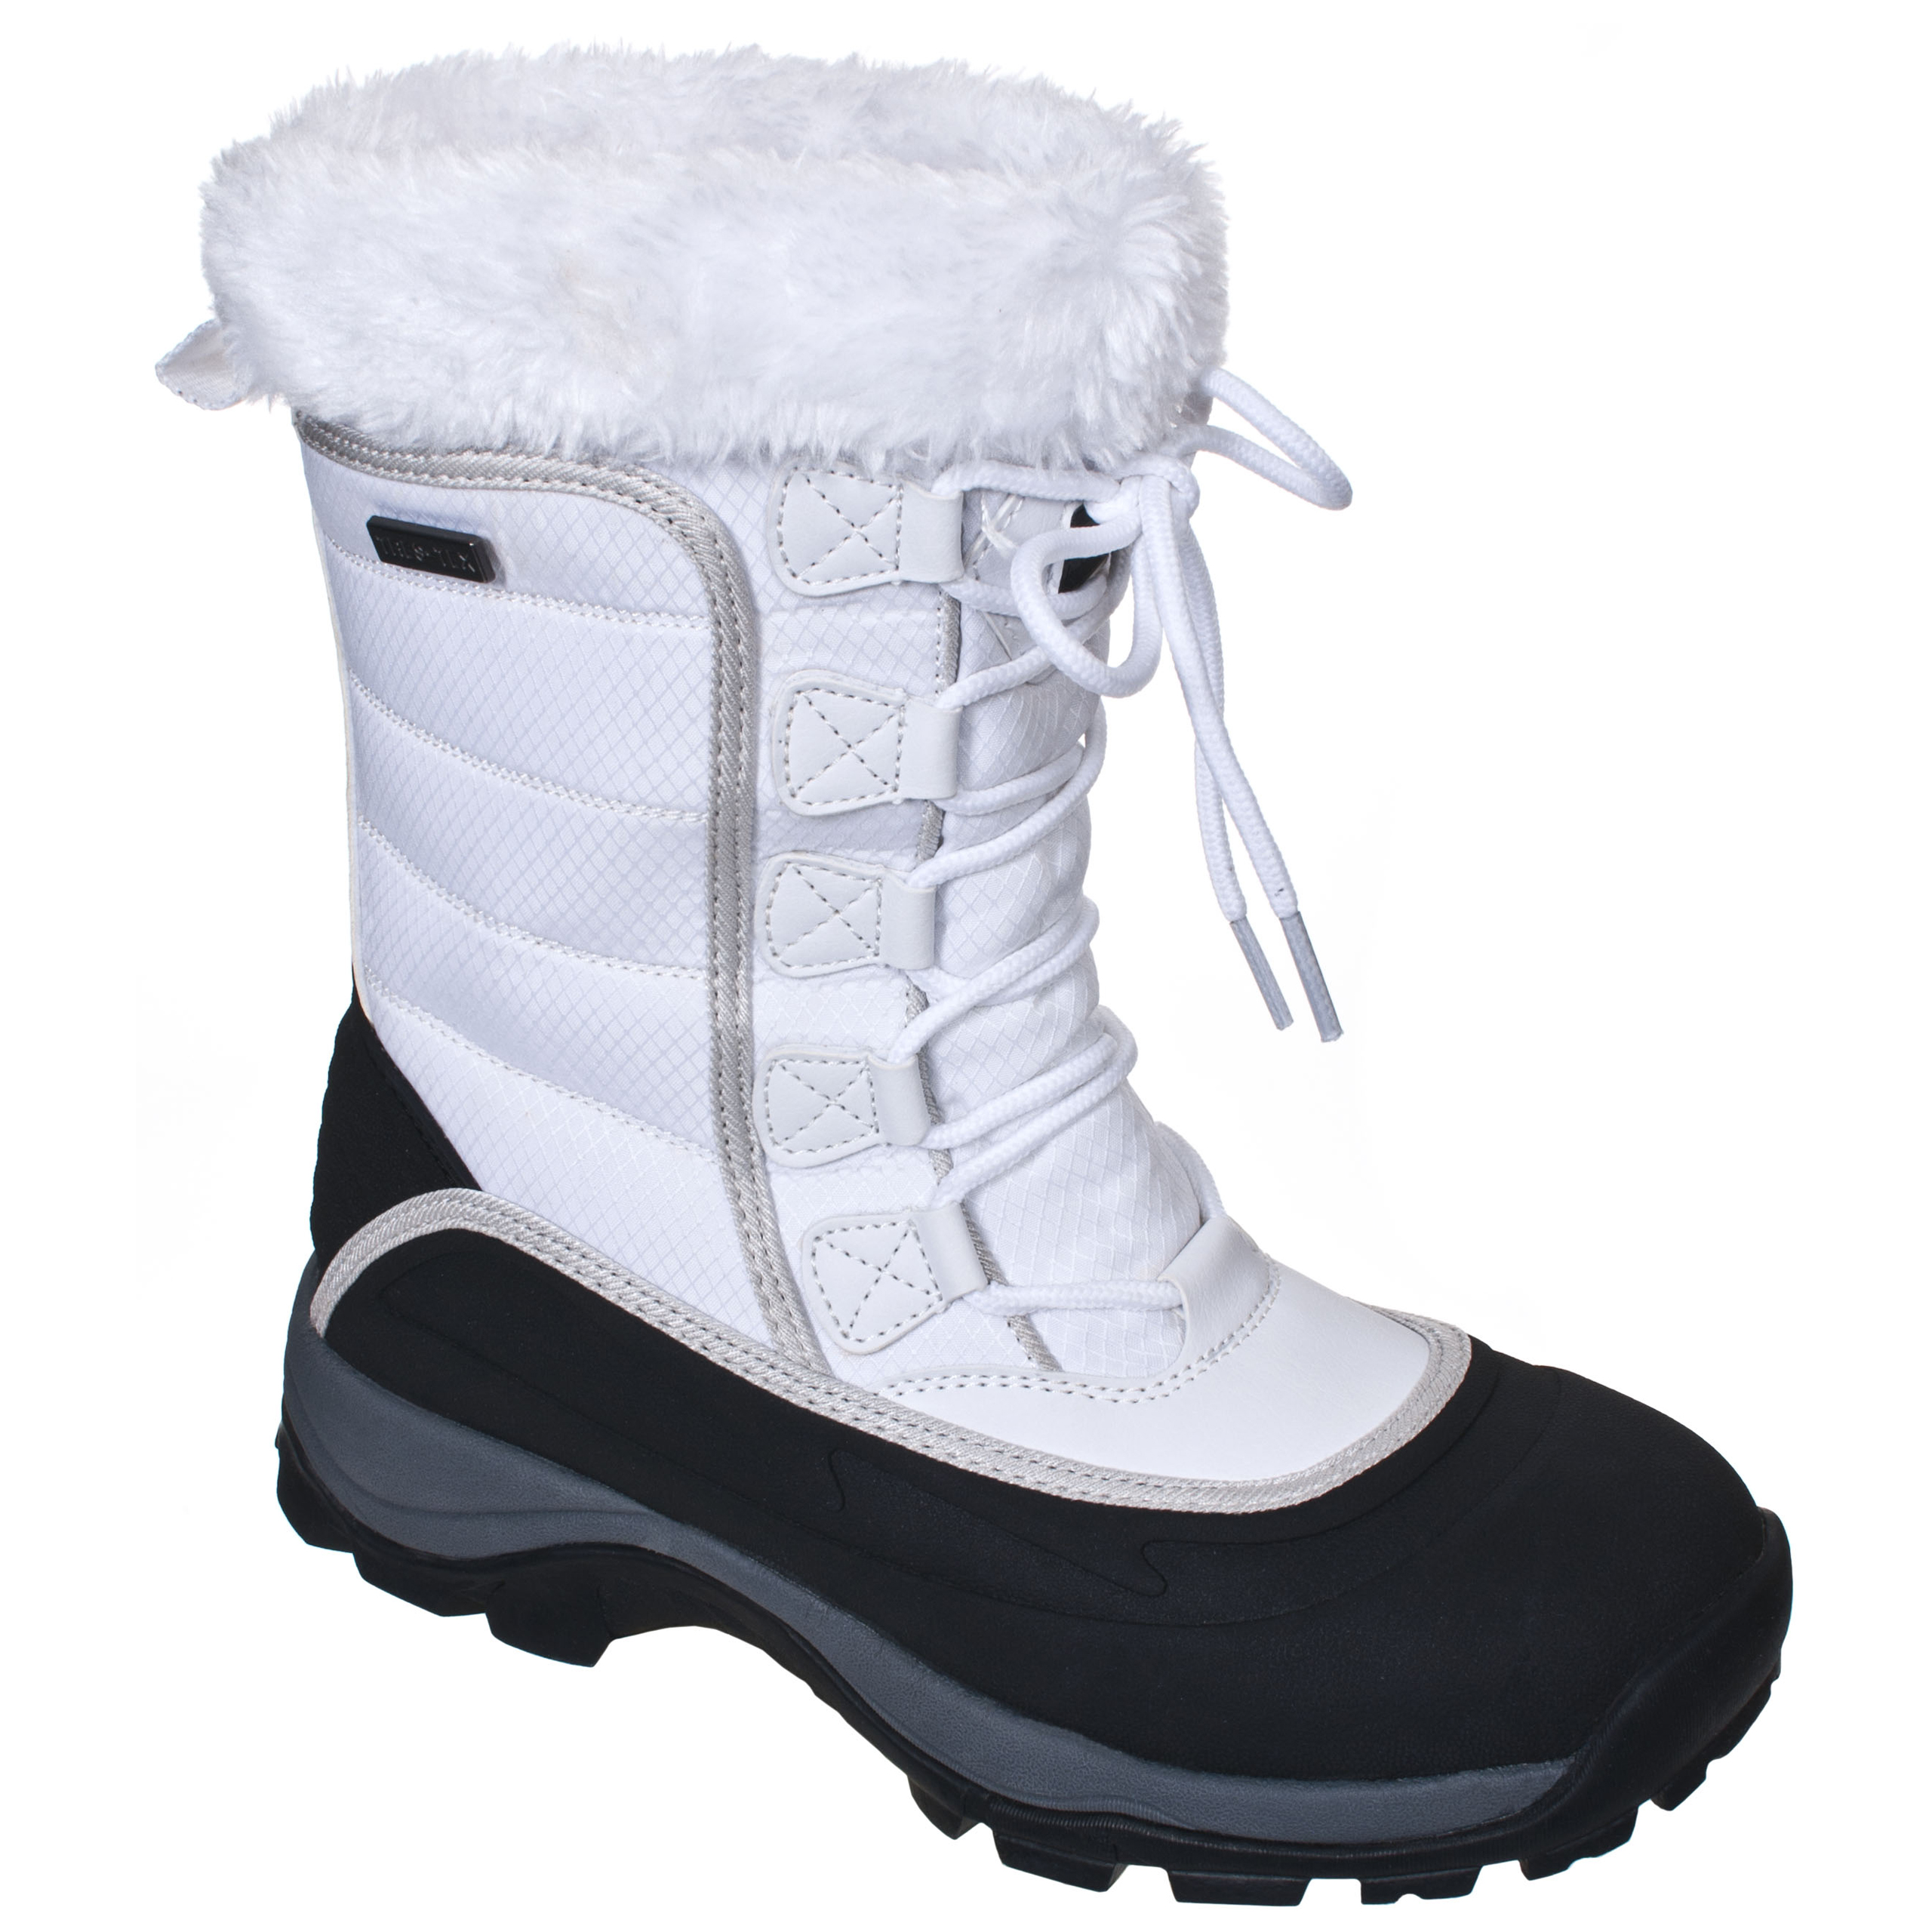 Womens White Snow Boots ahbjkR2C